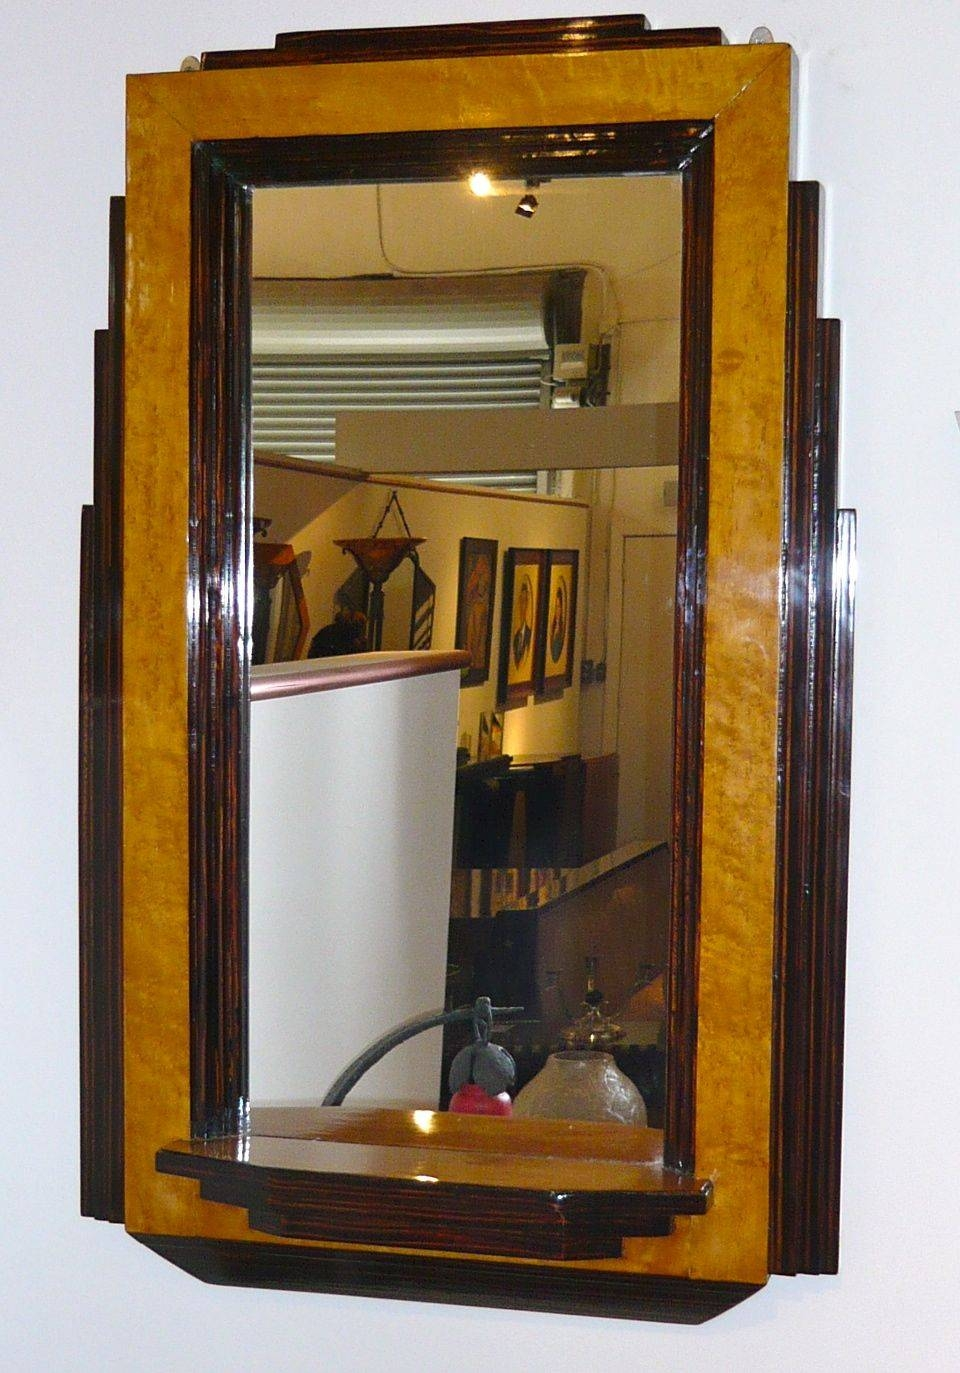 Art Deco Mirrors For Sale | Art Deco Collection with regard to Original Art Deco Mirrors (Image 11 of 25)